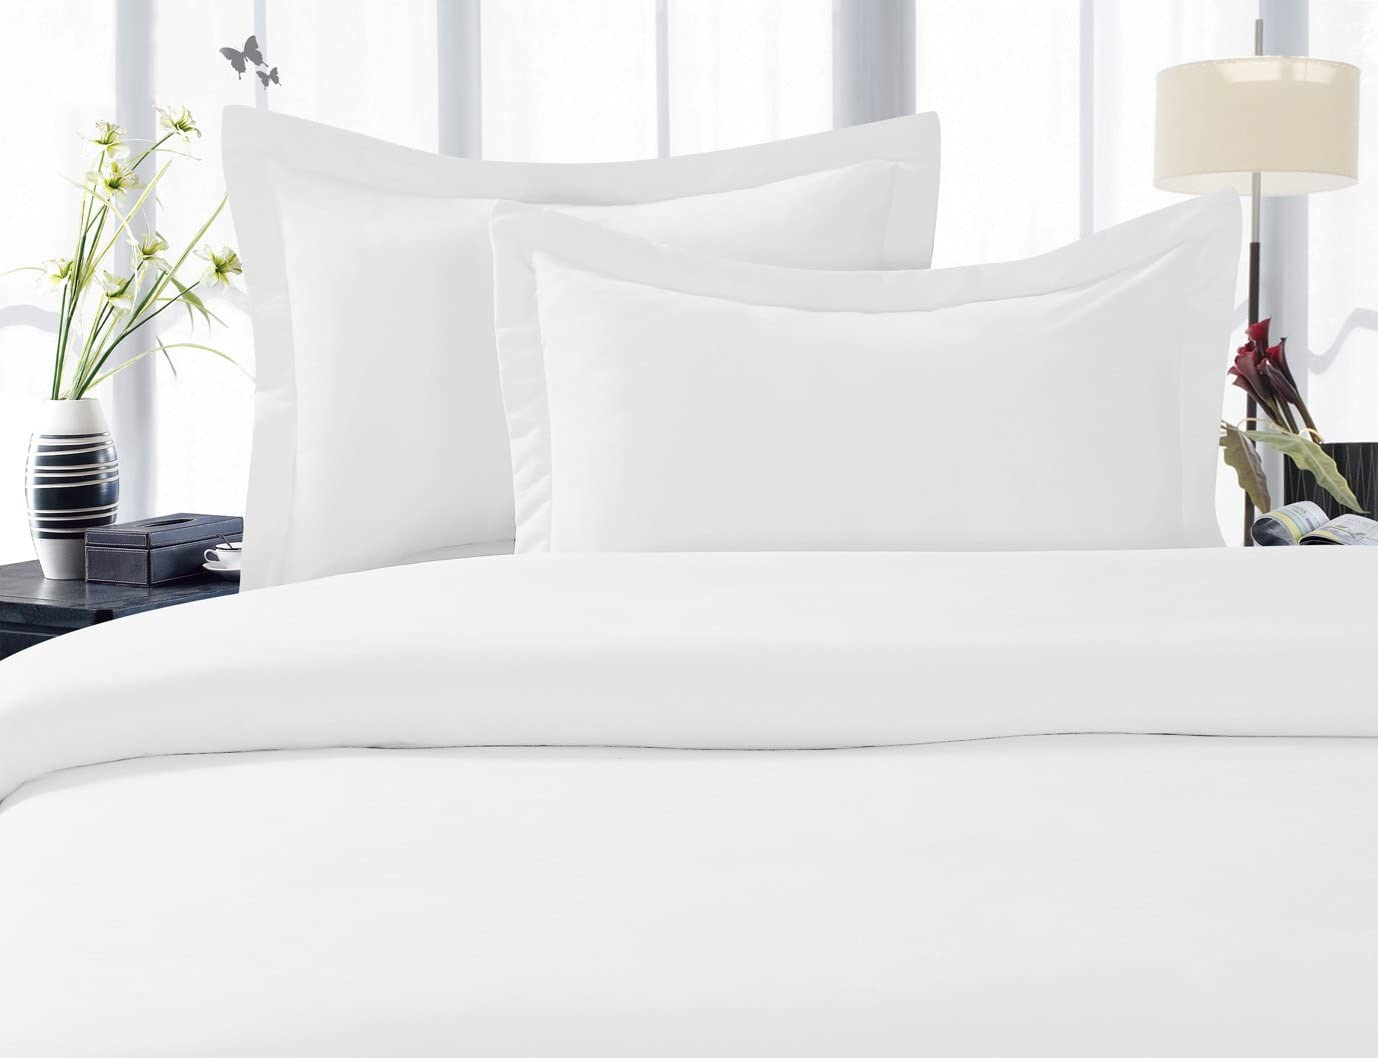 Elegant Comfort 3 Piece 1500 Thread Count Luxury Ultra Soft Egyptian Quality Coziest Duvet Cover Set, King/California King, White, 2RW- DVT K White